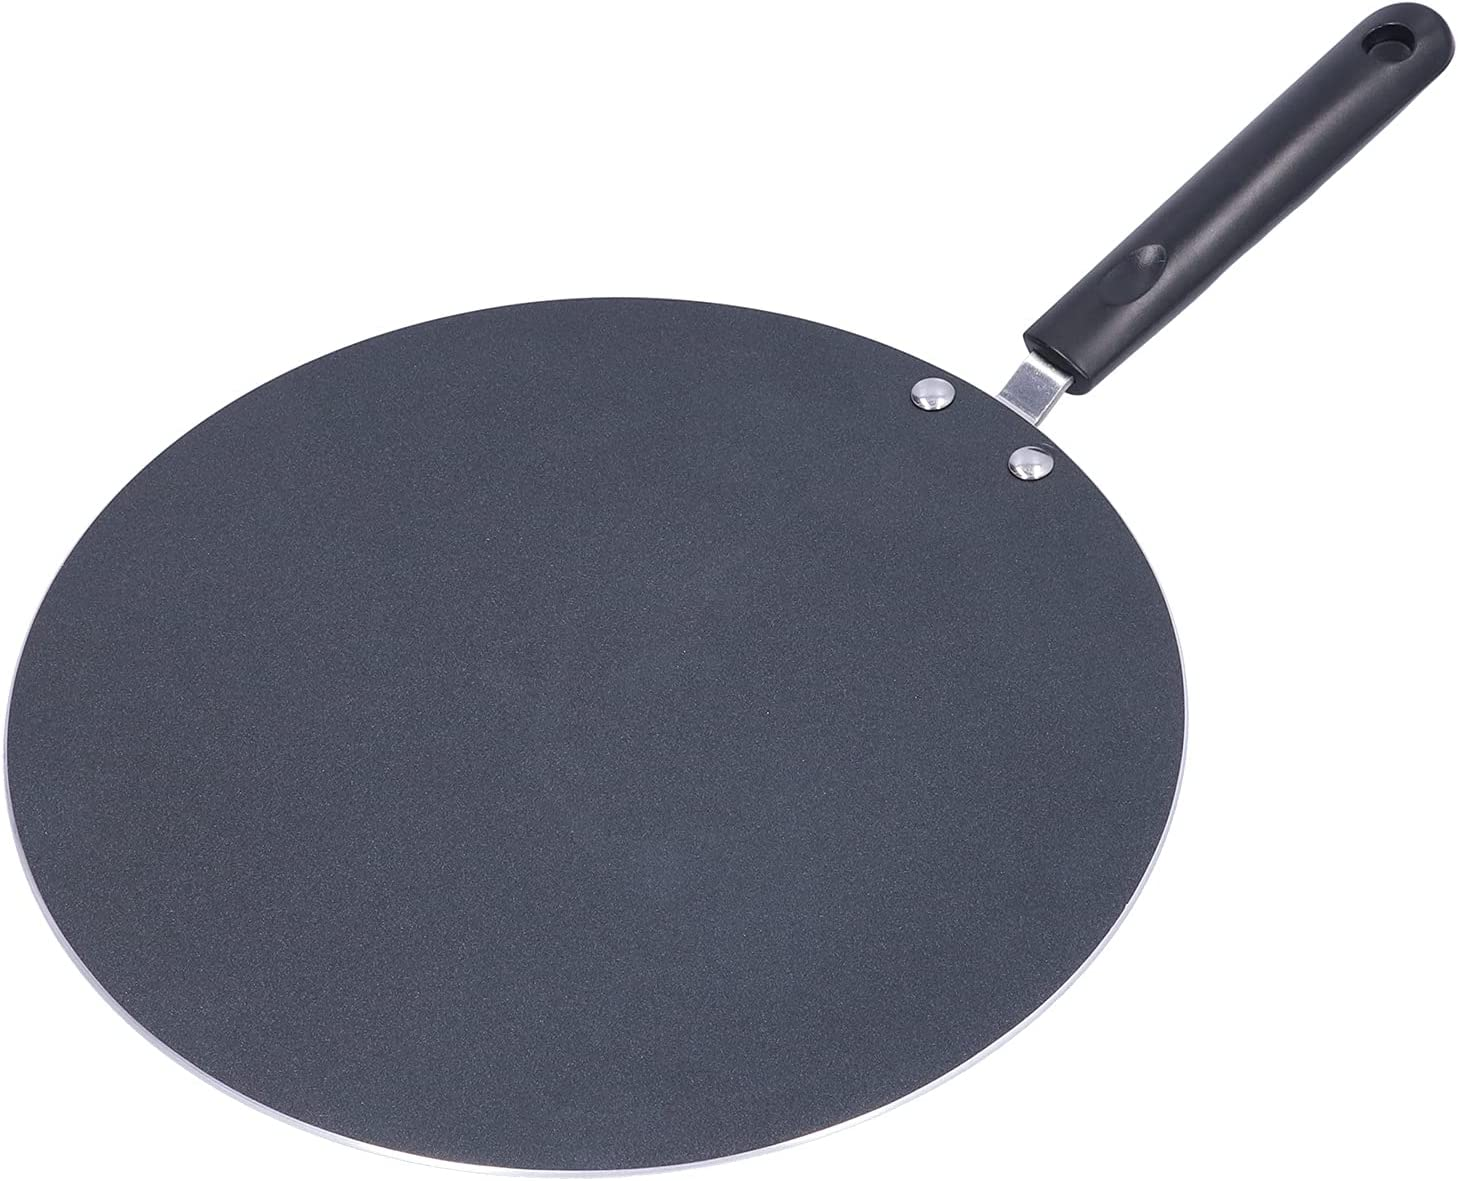 Nonstick Crepe Pan Griddle Dosa Spreader fo Wooden El Max 78% OFF Paso Mall with